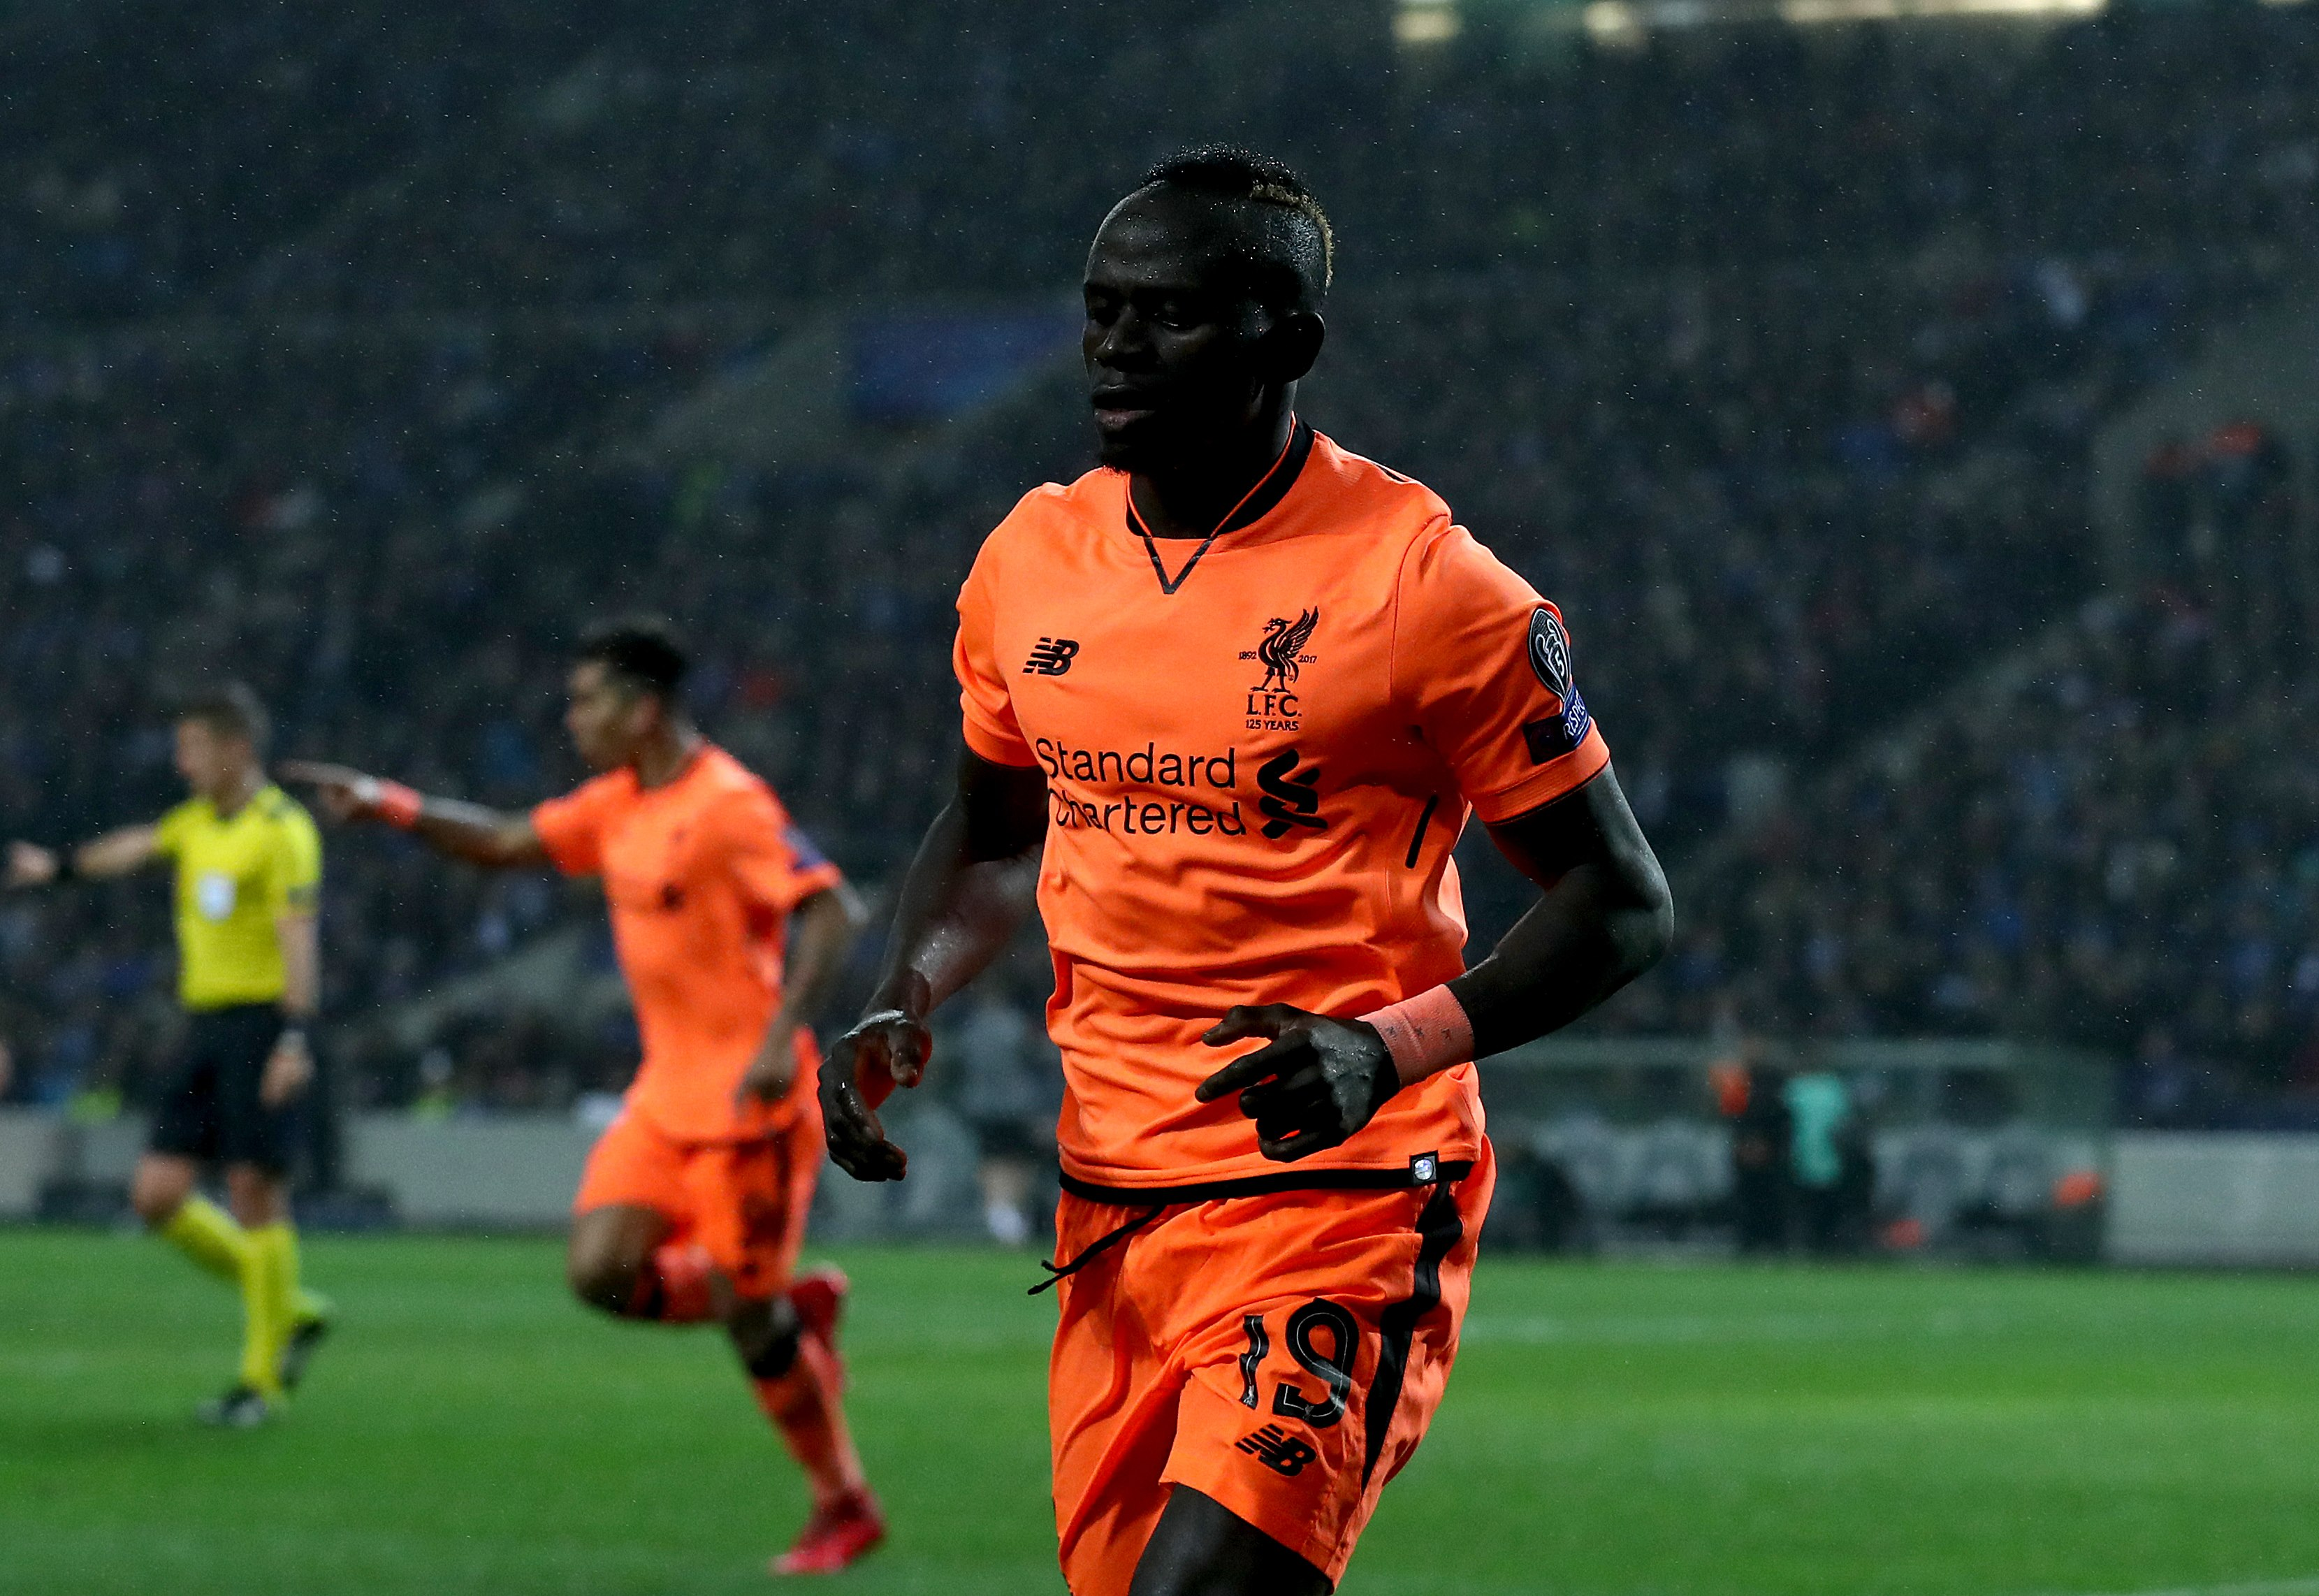 Sadio Mane set for Liverpool pay rise?